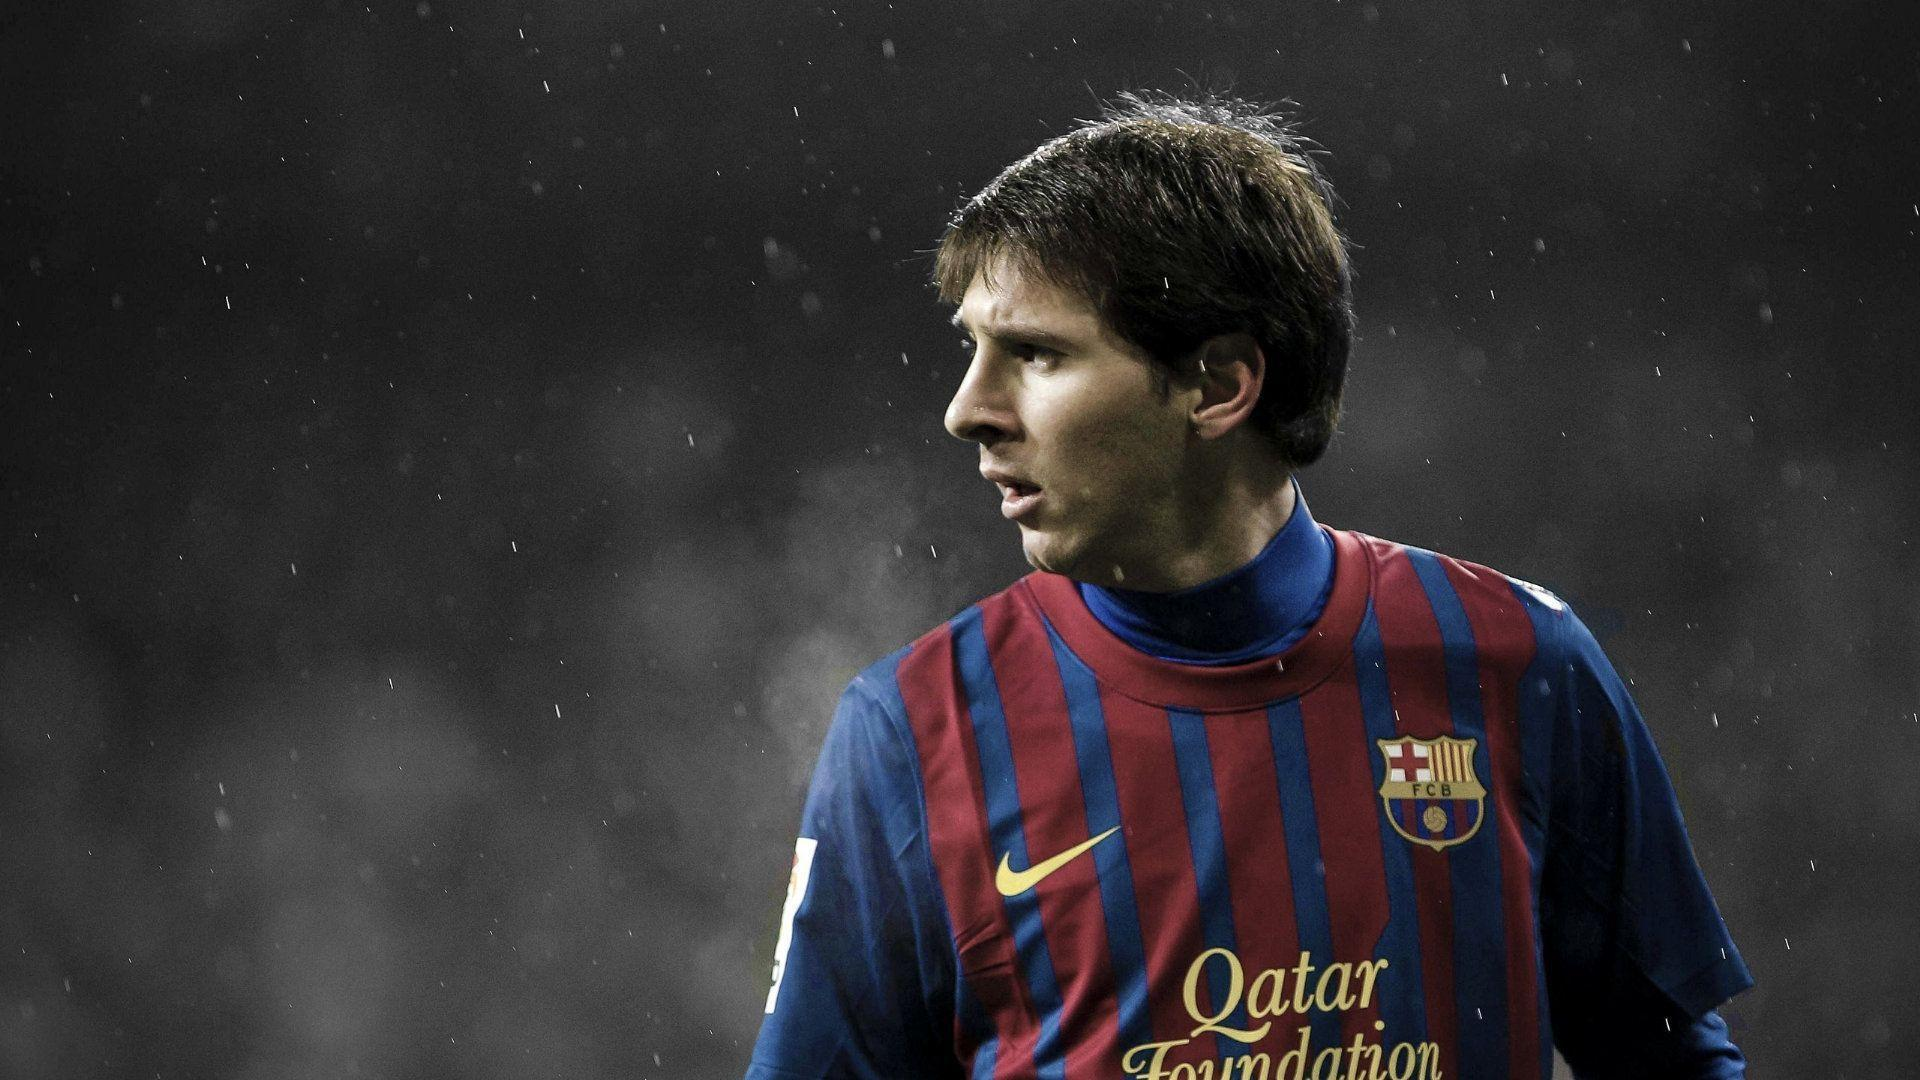 Messi Wallpapers | Messi News